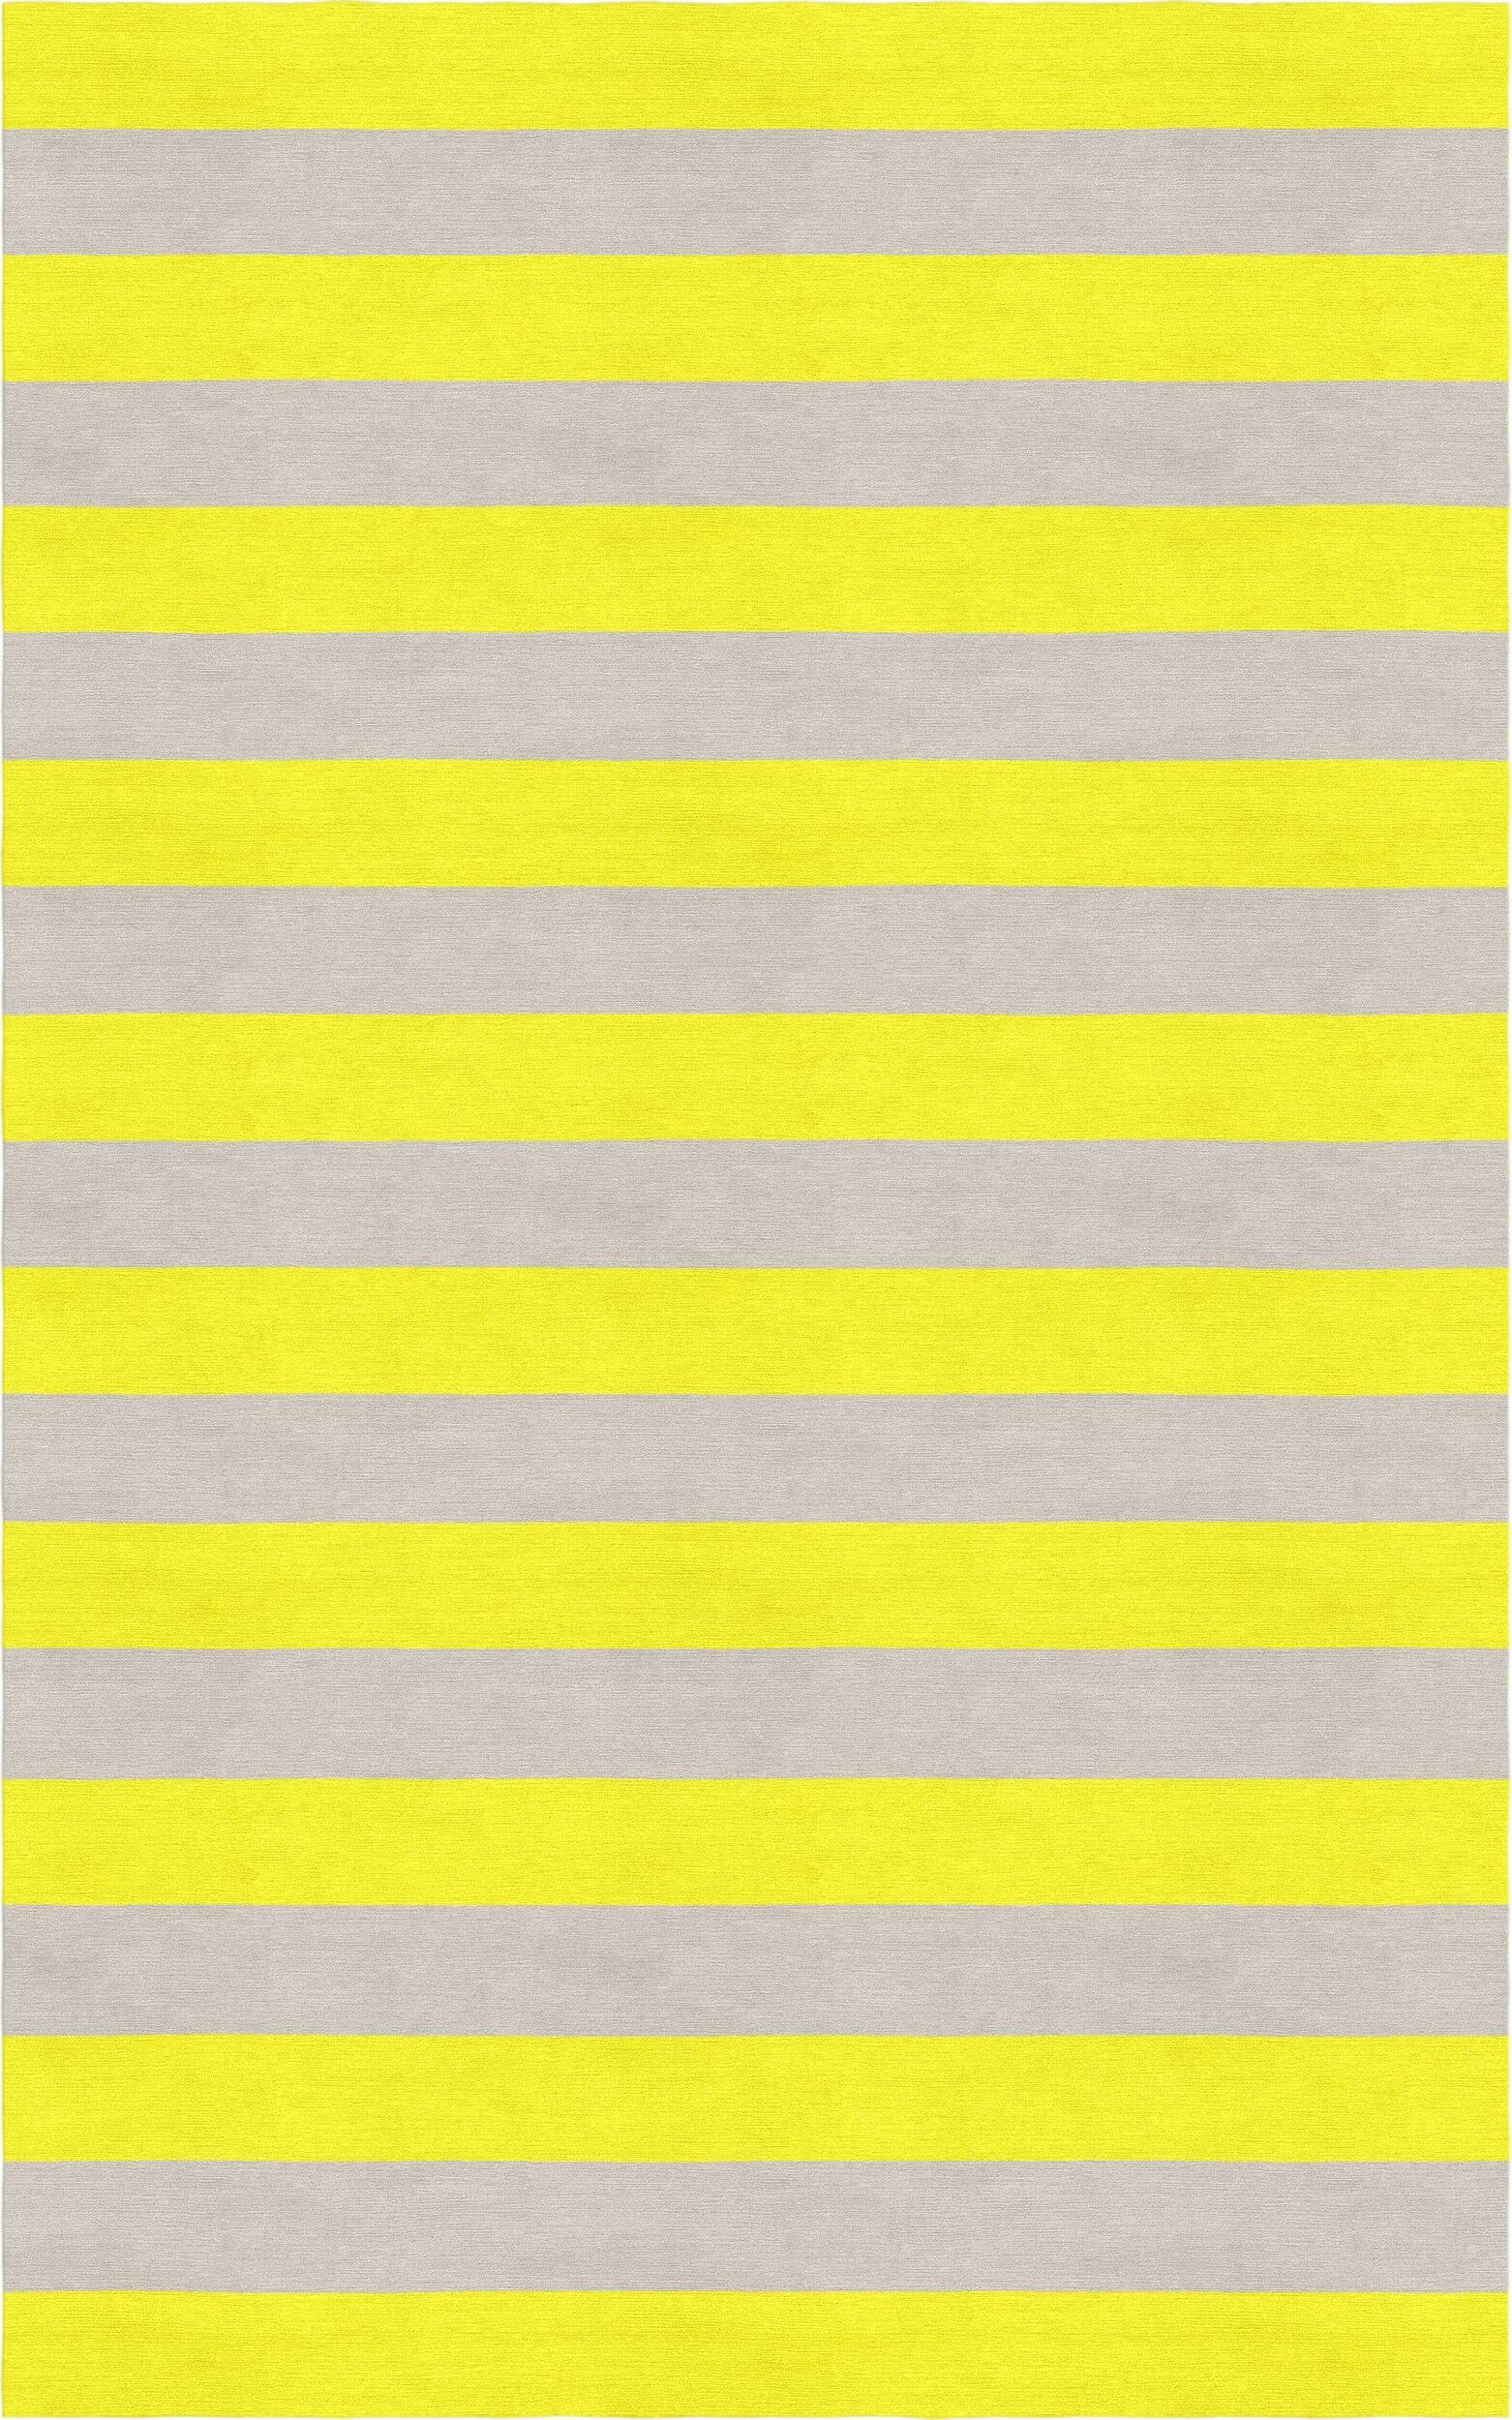 Cespedes Hand Tufted Wool Silver/Yellow Stripe Area Rug Rug Size: Rectangle 5' x 8'